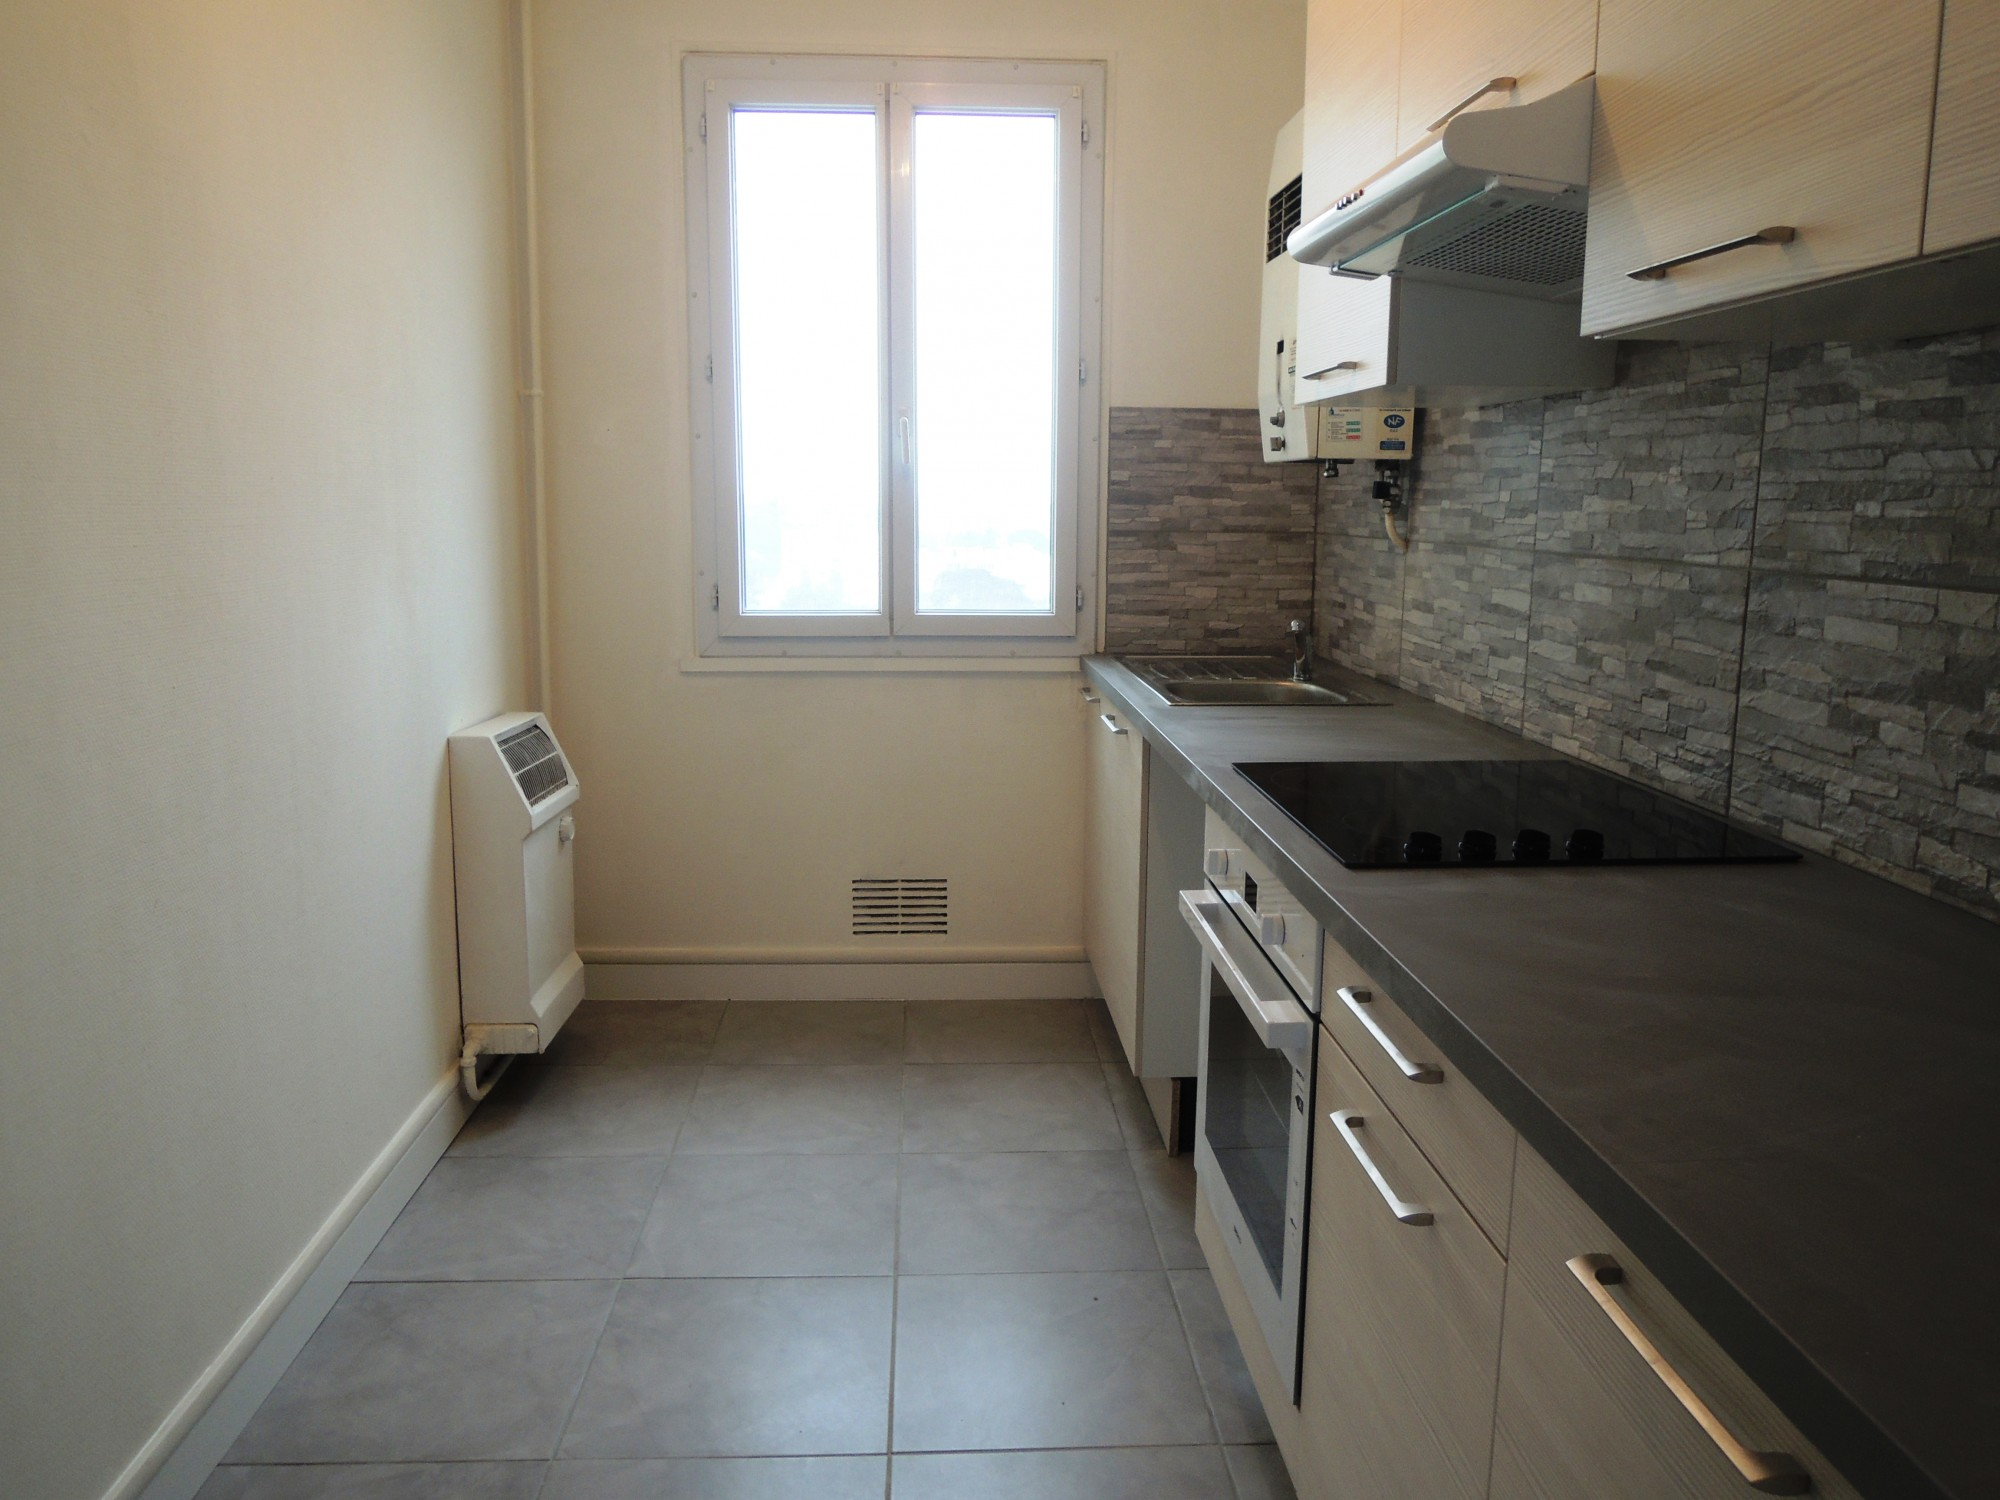 Location appartement t3 f3 bordeaux cauderan bru immobilier for F3 bordeaux